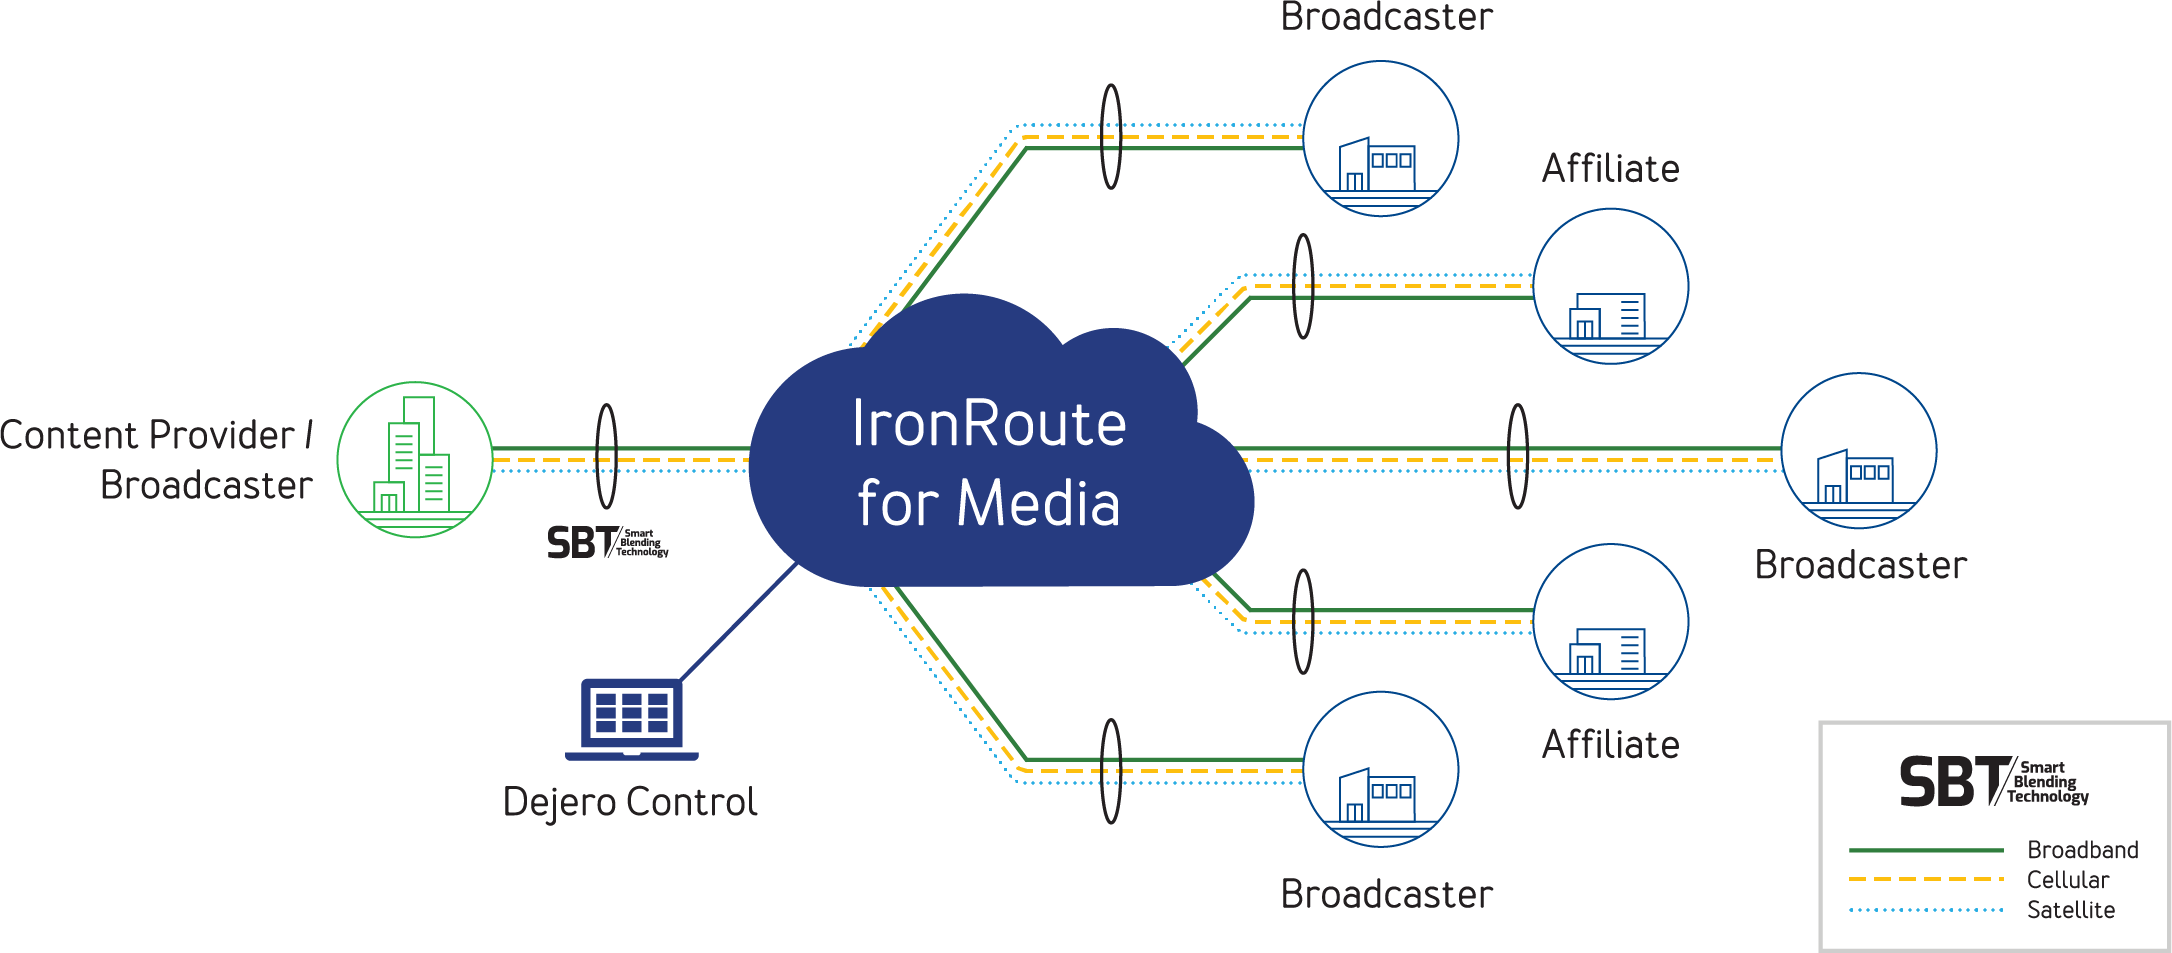 IronRoute-Workflow-1